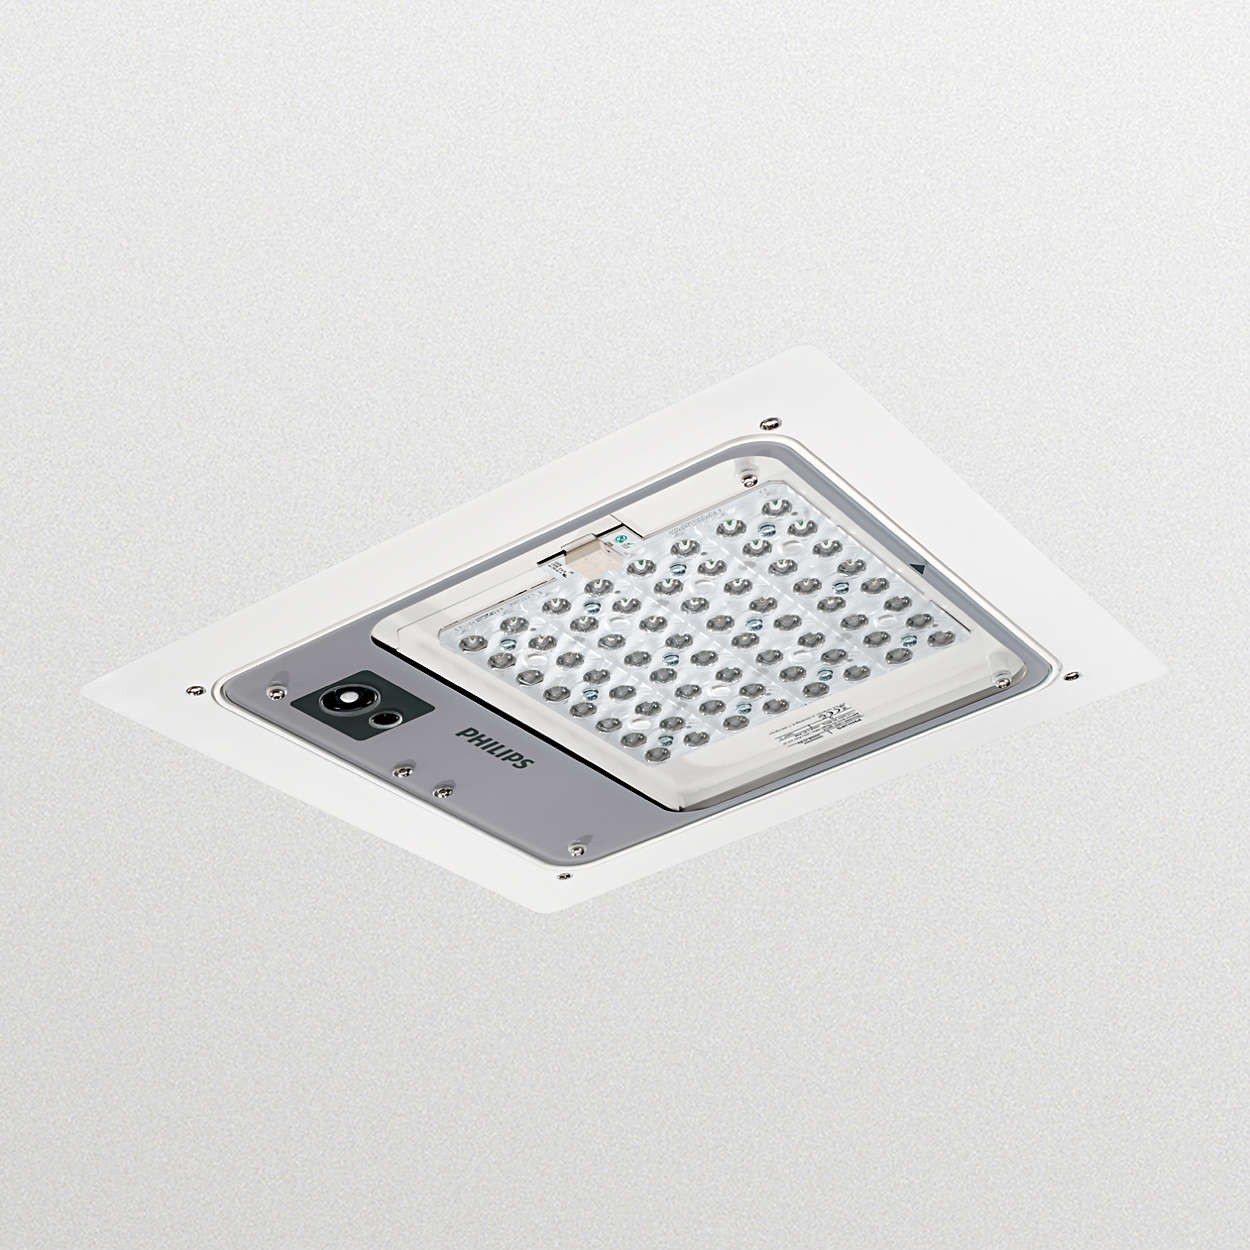 Mini 300 LED gen2 –Controlable, Manageable & Energy Efficient canopy lighting